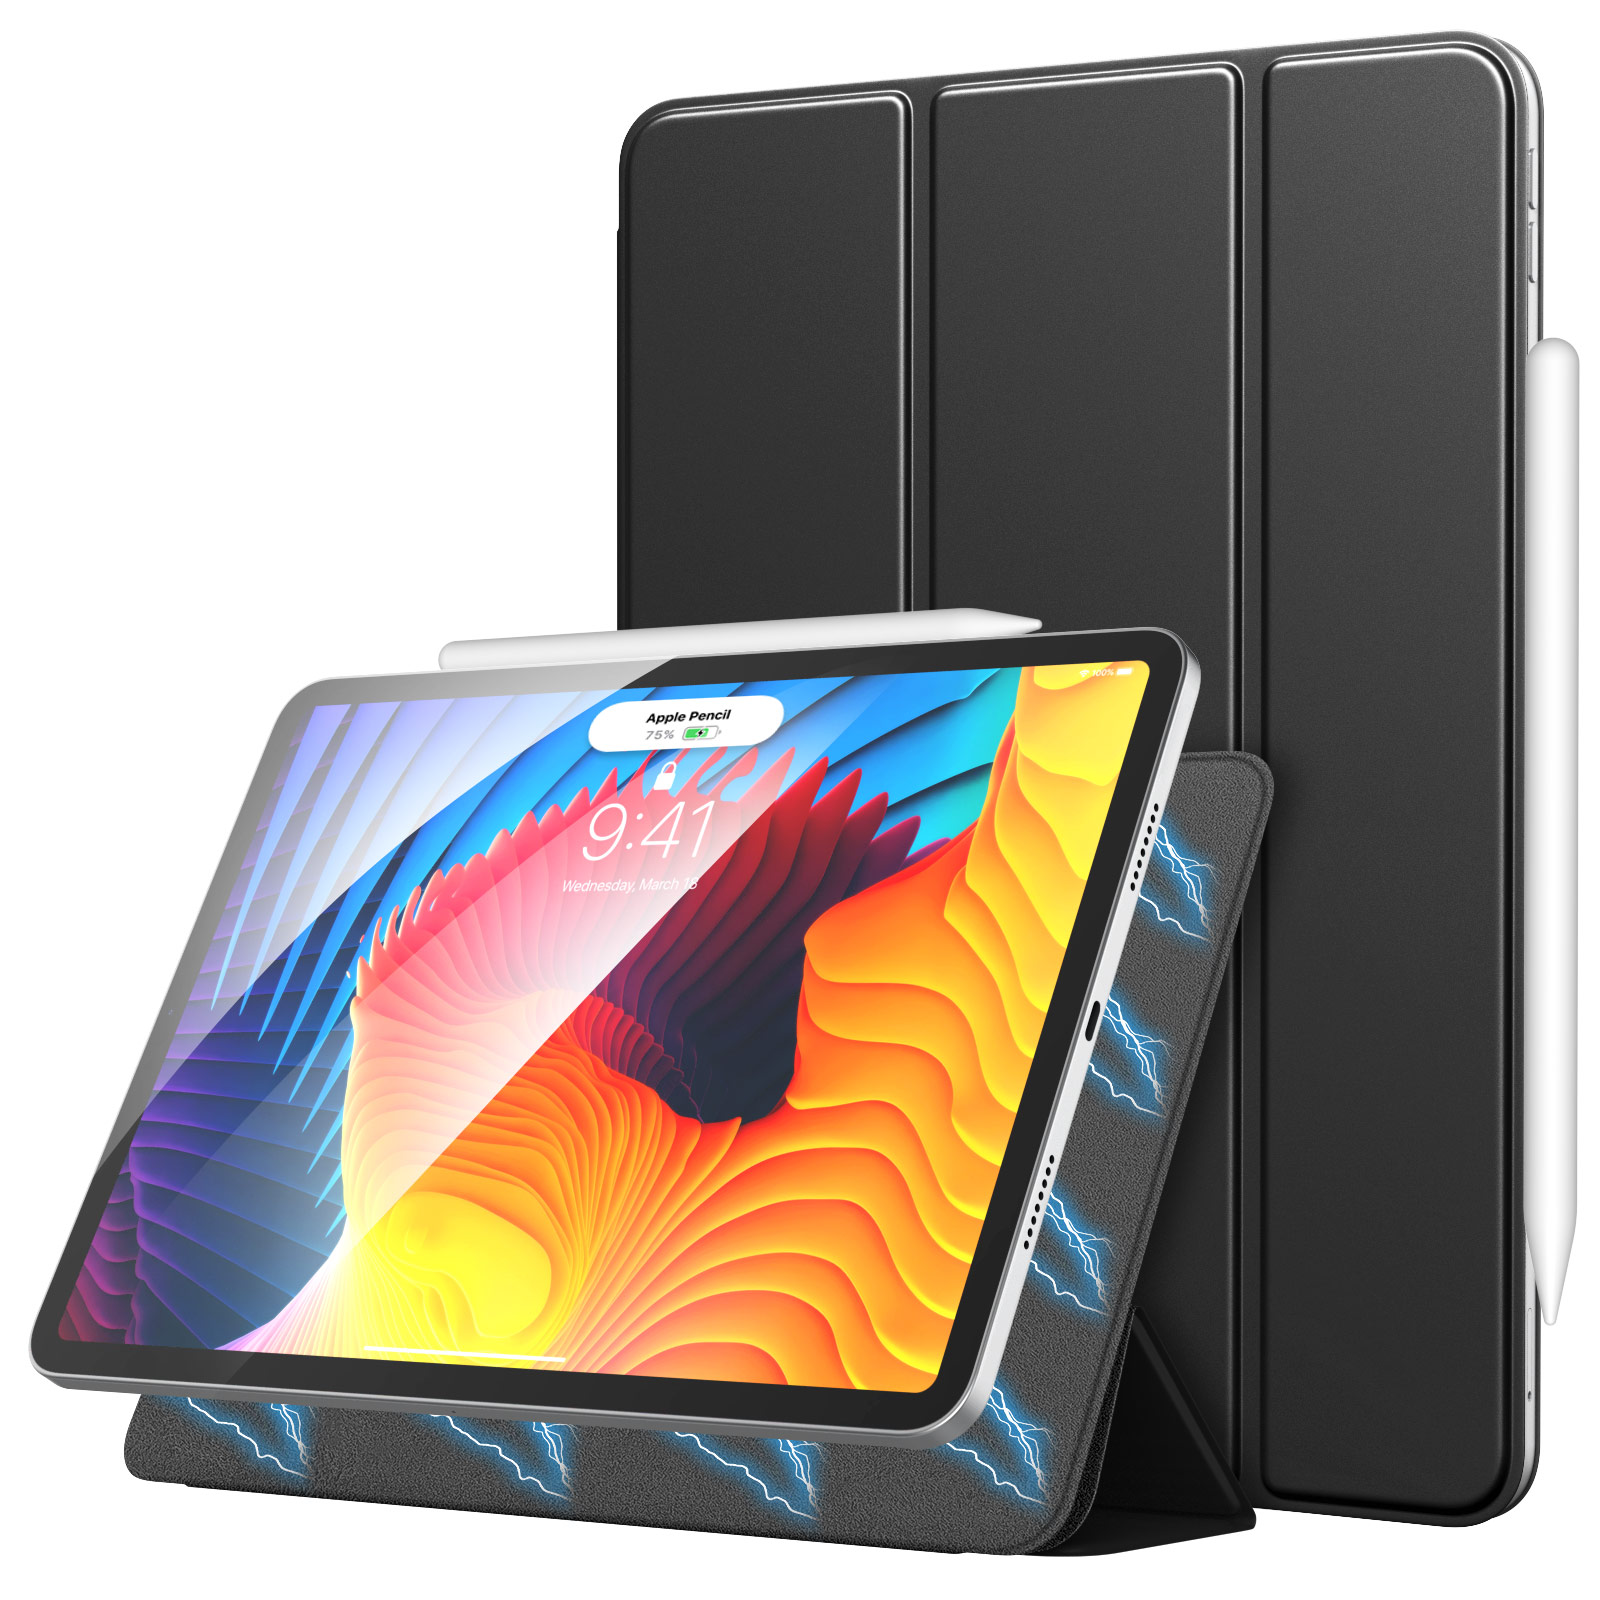 MoKo Magnetic Smart Folio Slim Lightweight Stand Case For New iPad Pro 11 inch 2021(3rd Gen), [Support Apple Pencil 2 Ch